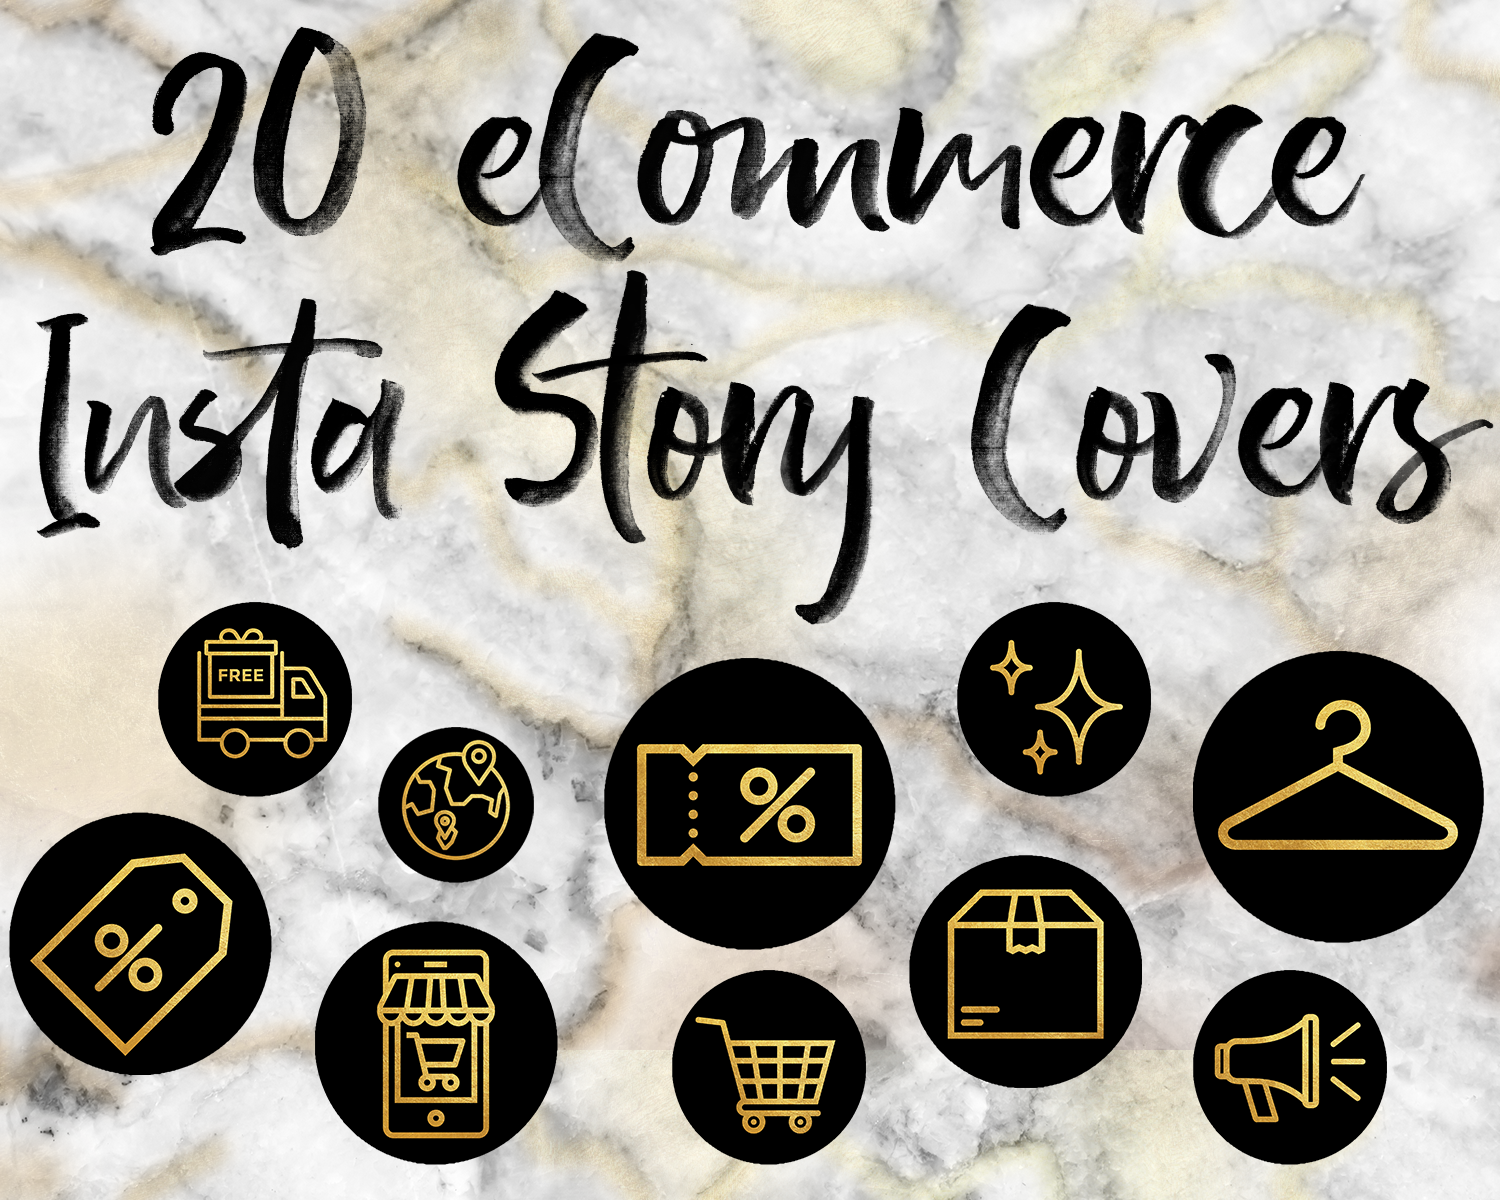 Instagram Icons Business Insta Story Covers Instagram Highlights E Commerce Brand Online Shop Branding Kit Gold Foil Instagram Stories Instagram Branding Instagram Icons Etsy Instagram